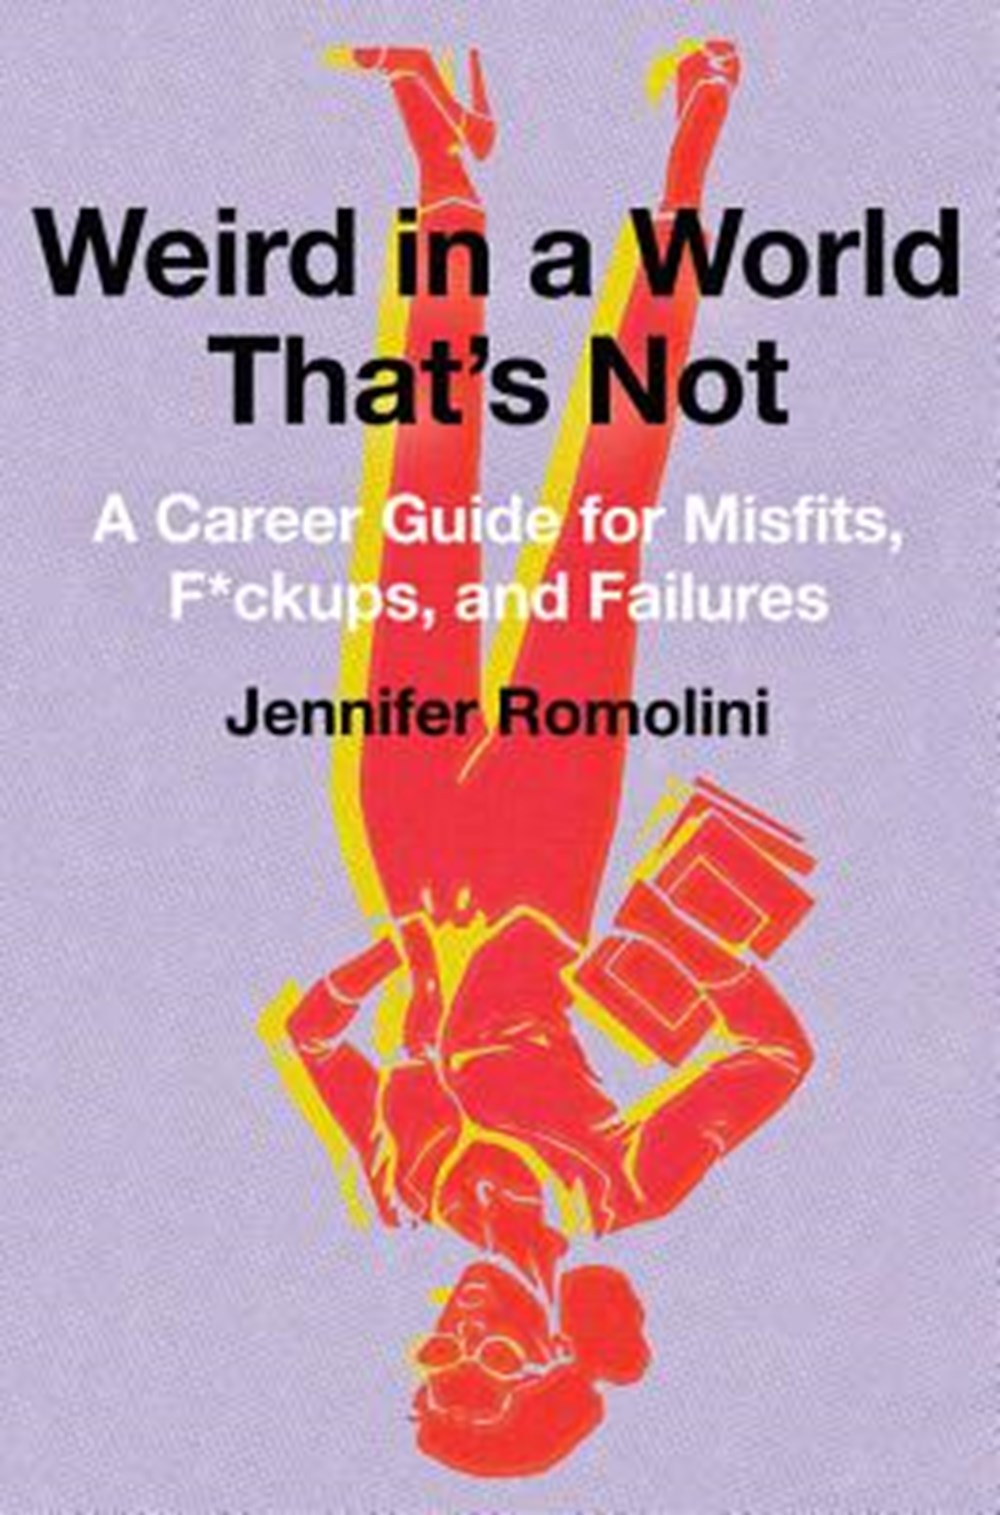 Weird in a World That's Not A Career Guide for Misfits